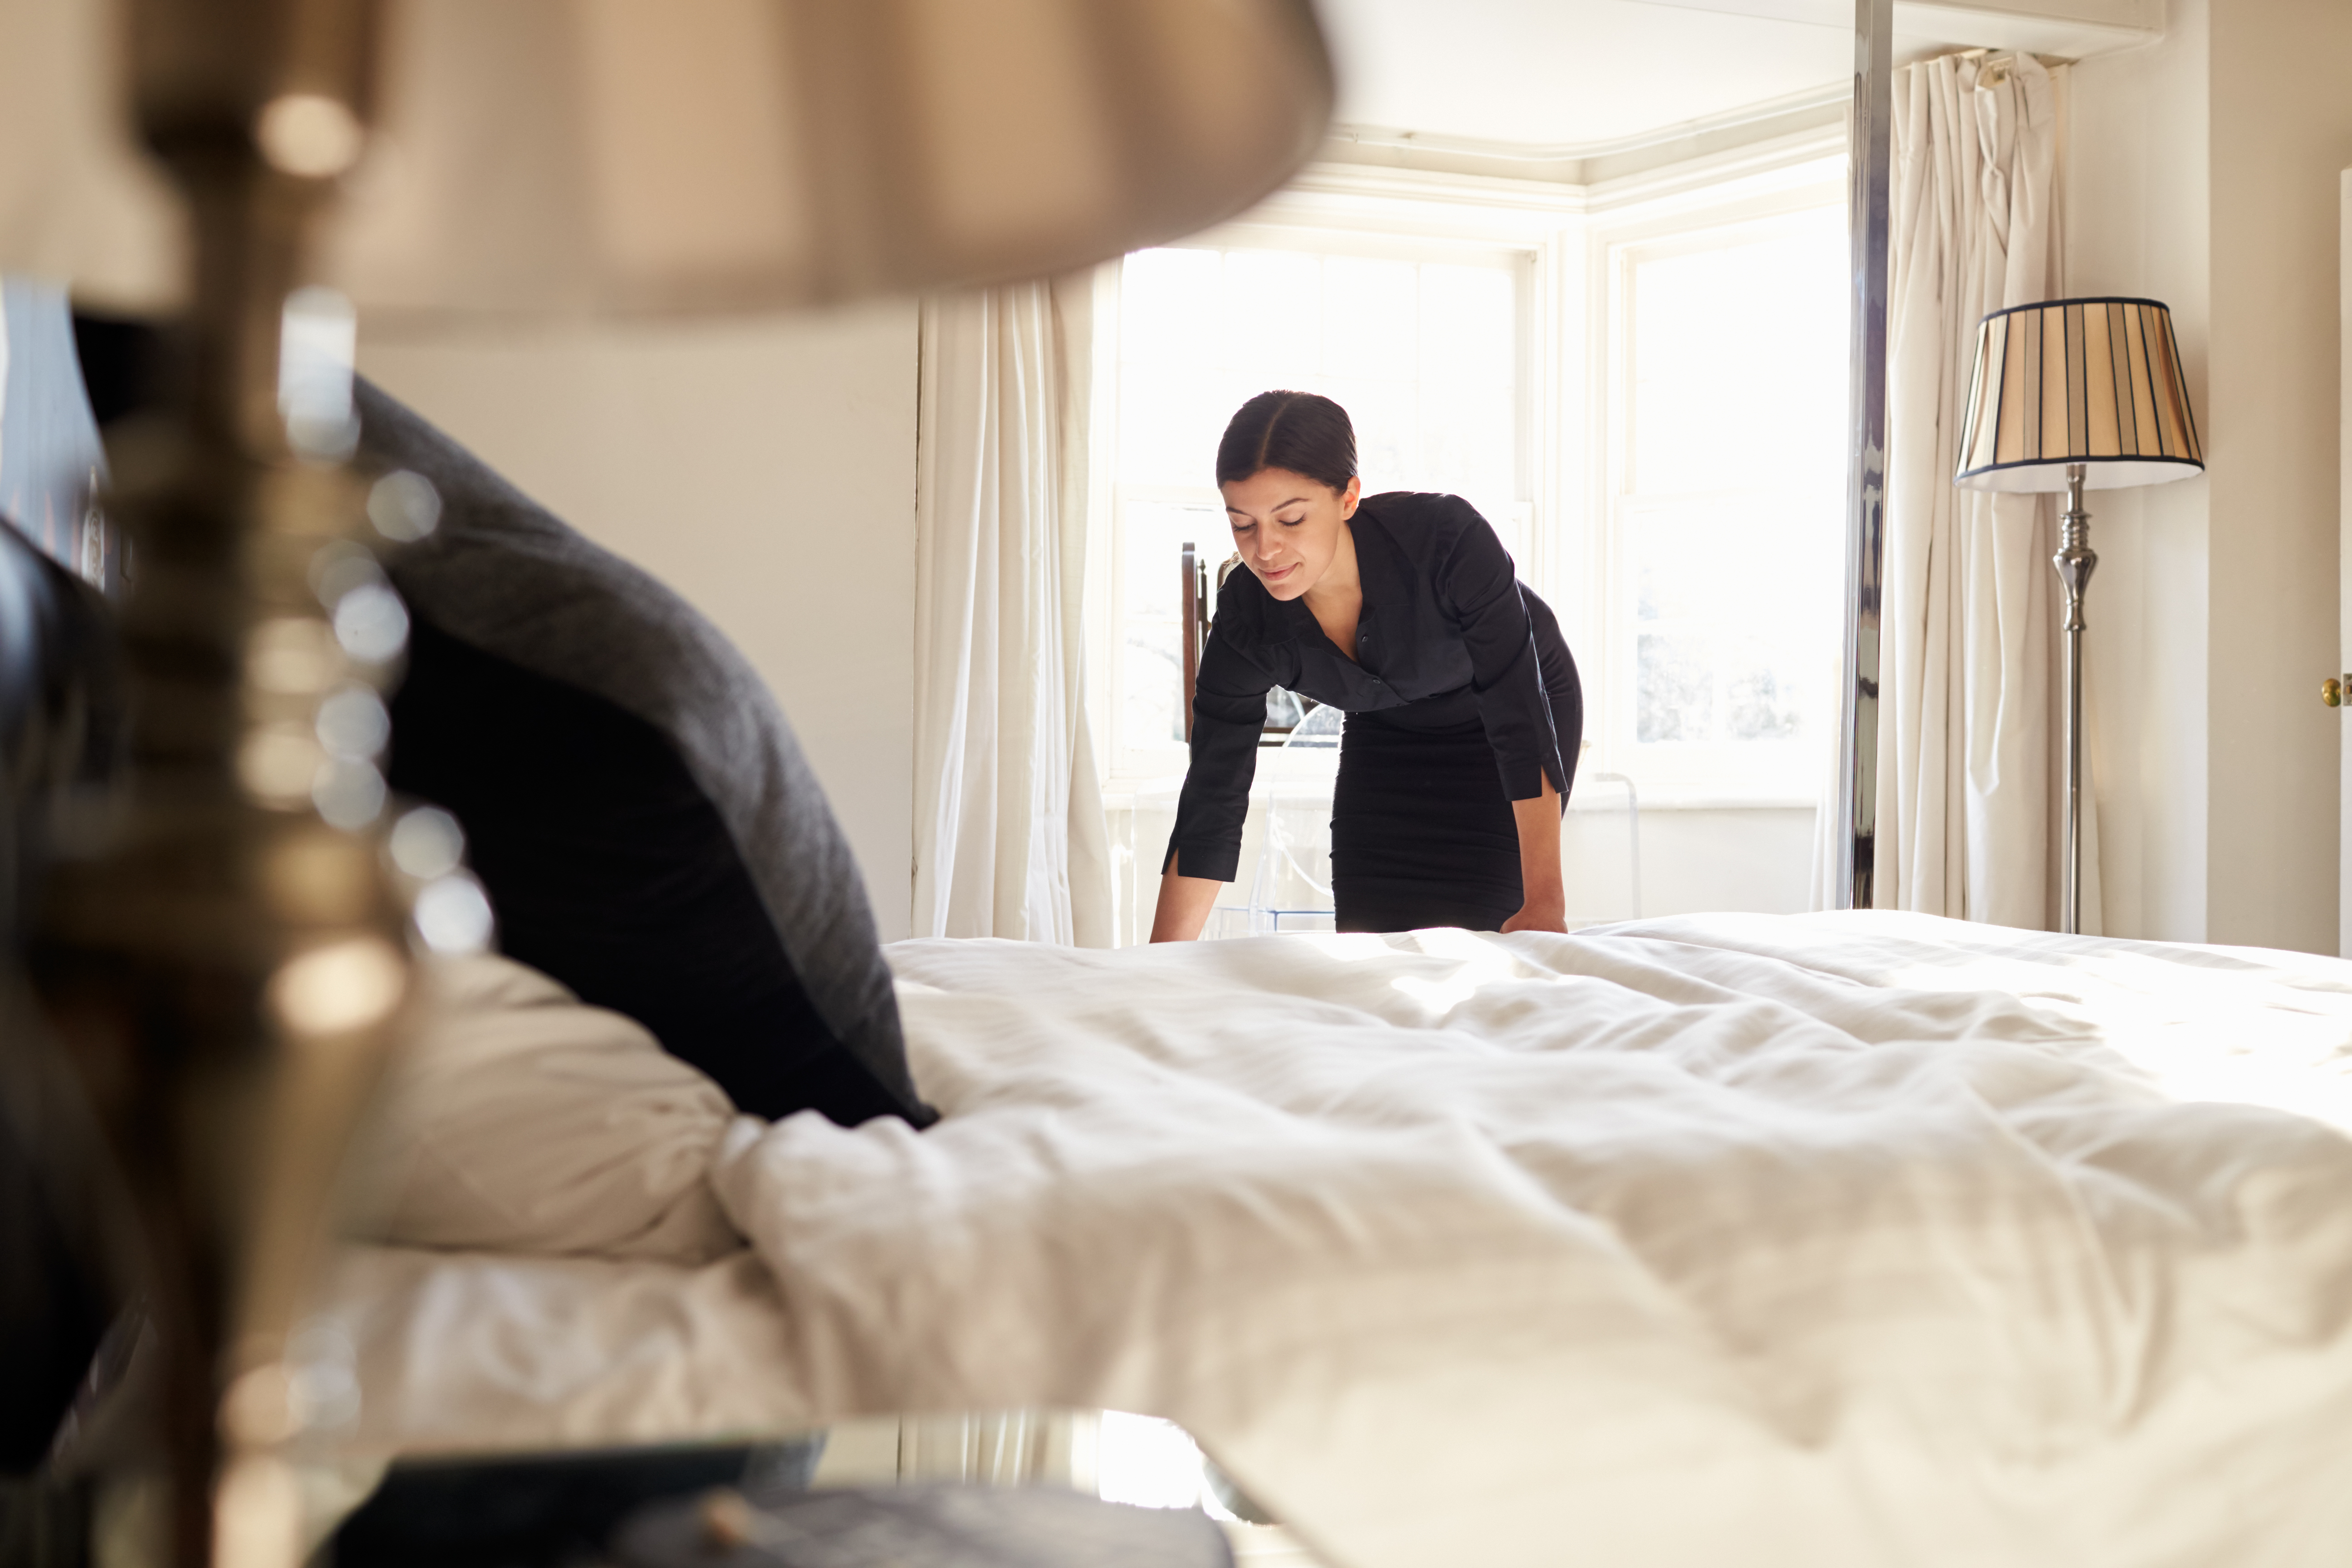 15836541-chambermaid-changing-bed-linen-on-the-bed-in-a-hotel-room